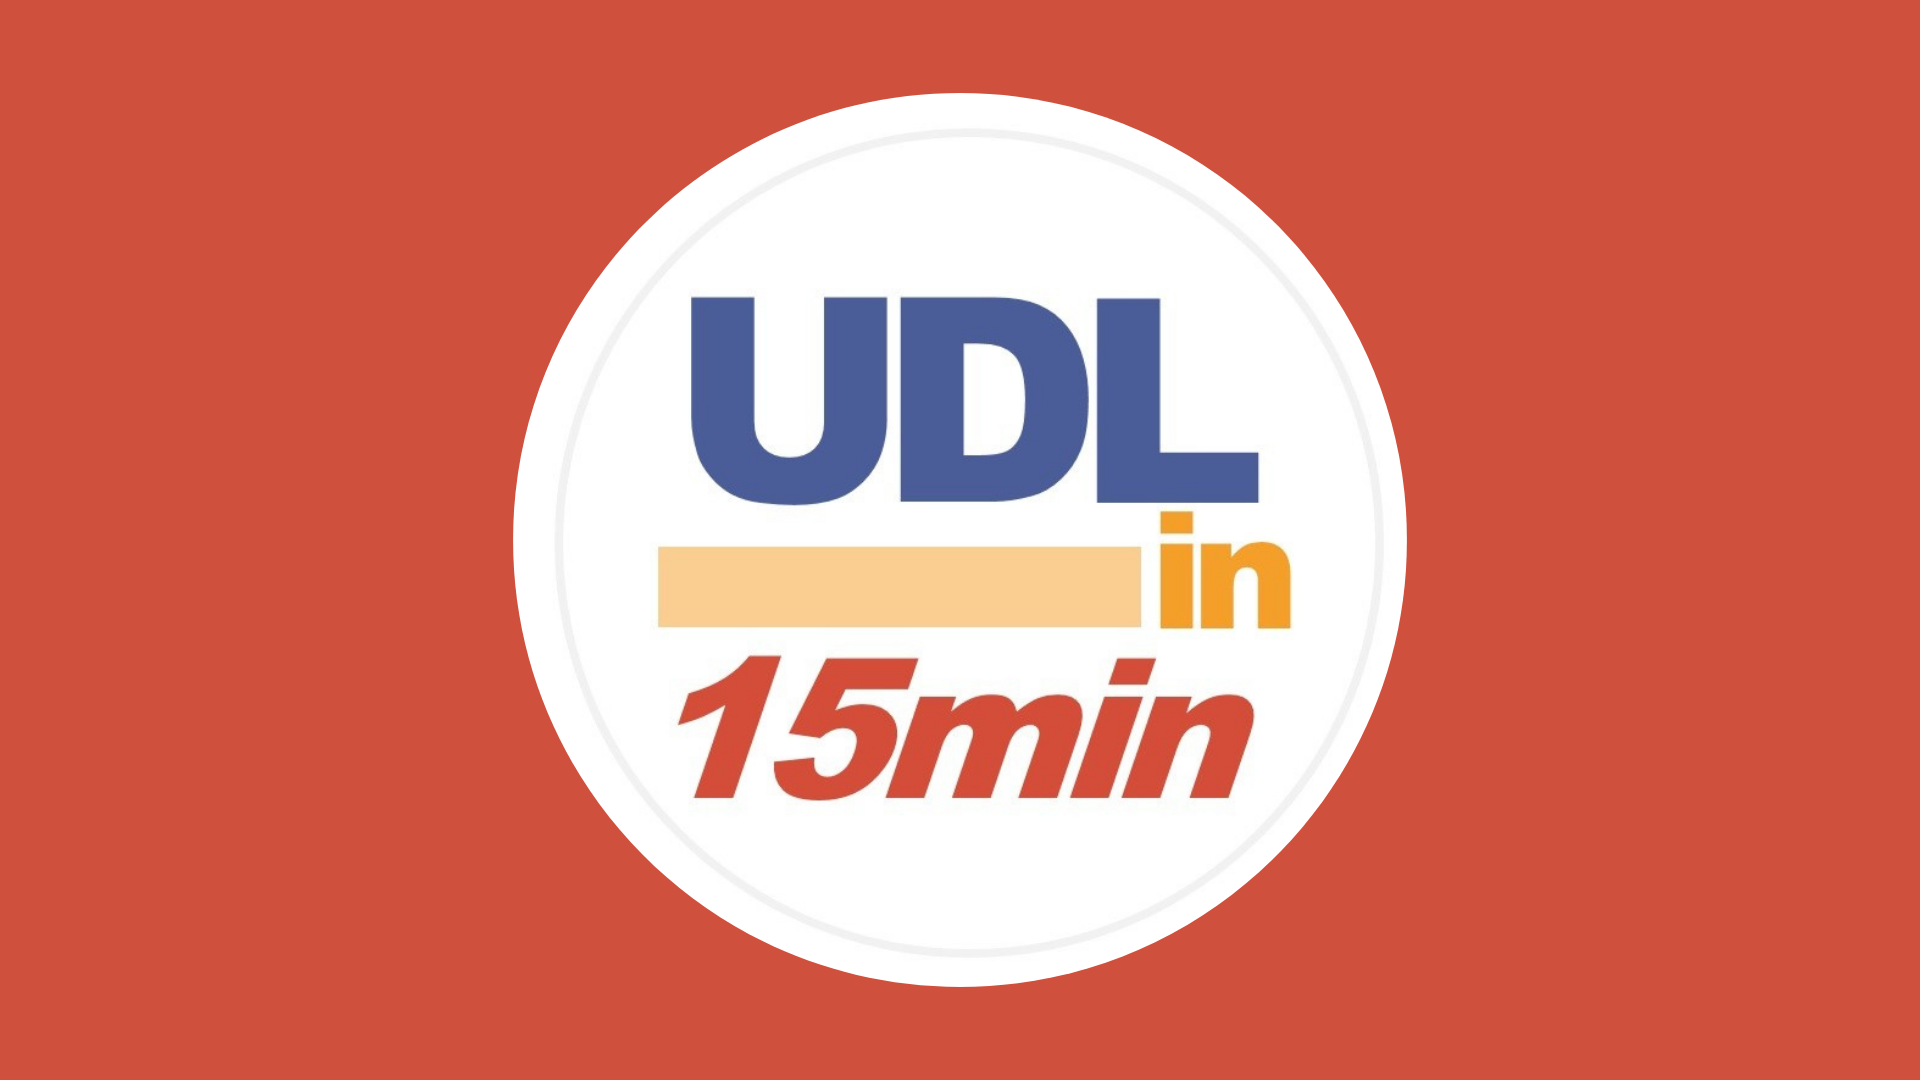 Image shows logo for UDL in 15 Minutes podcast